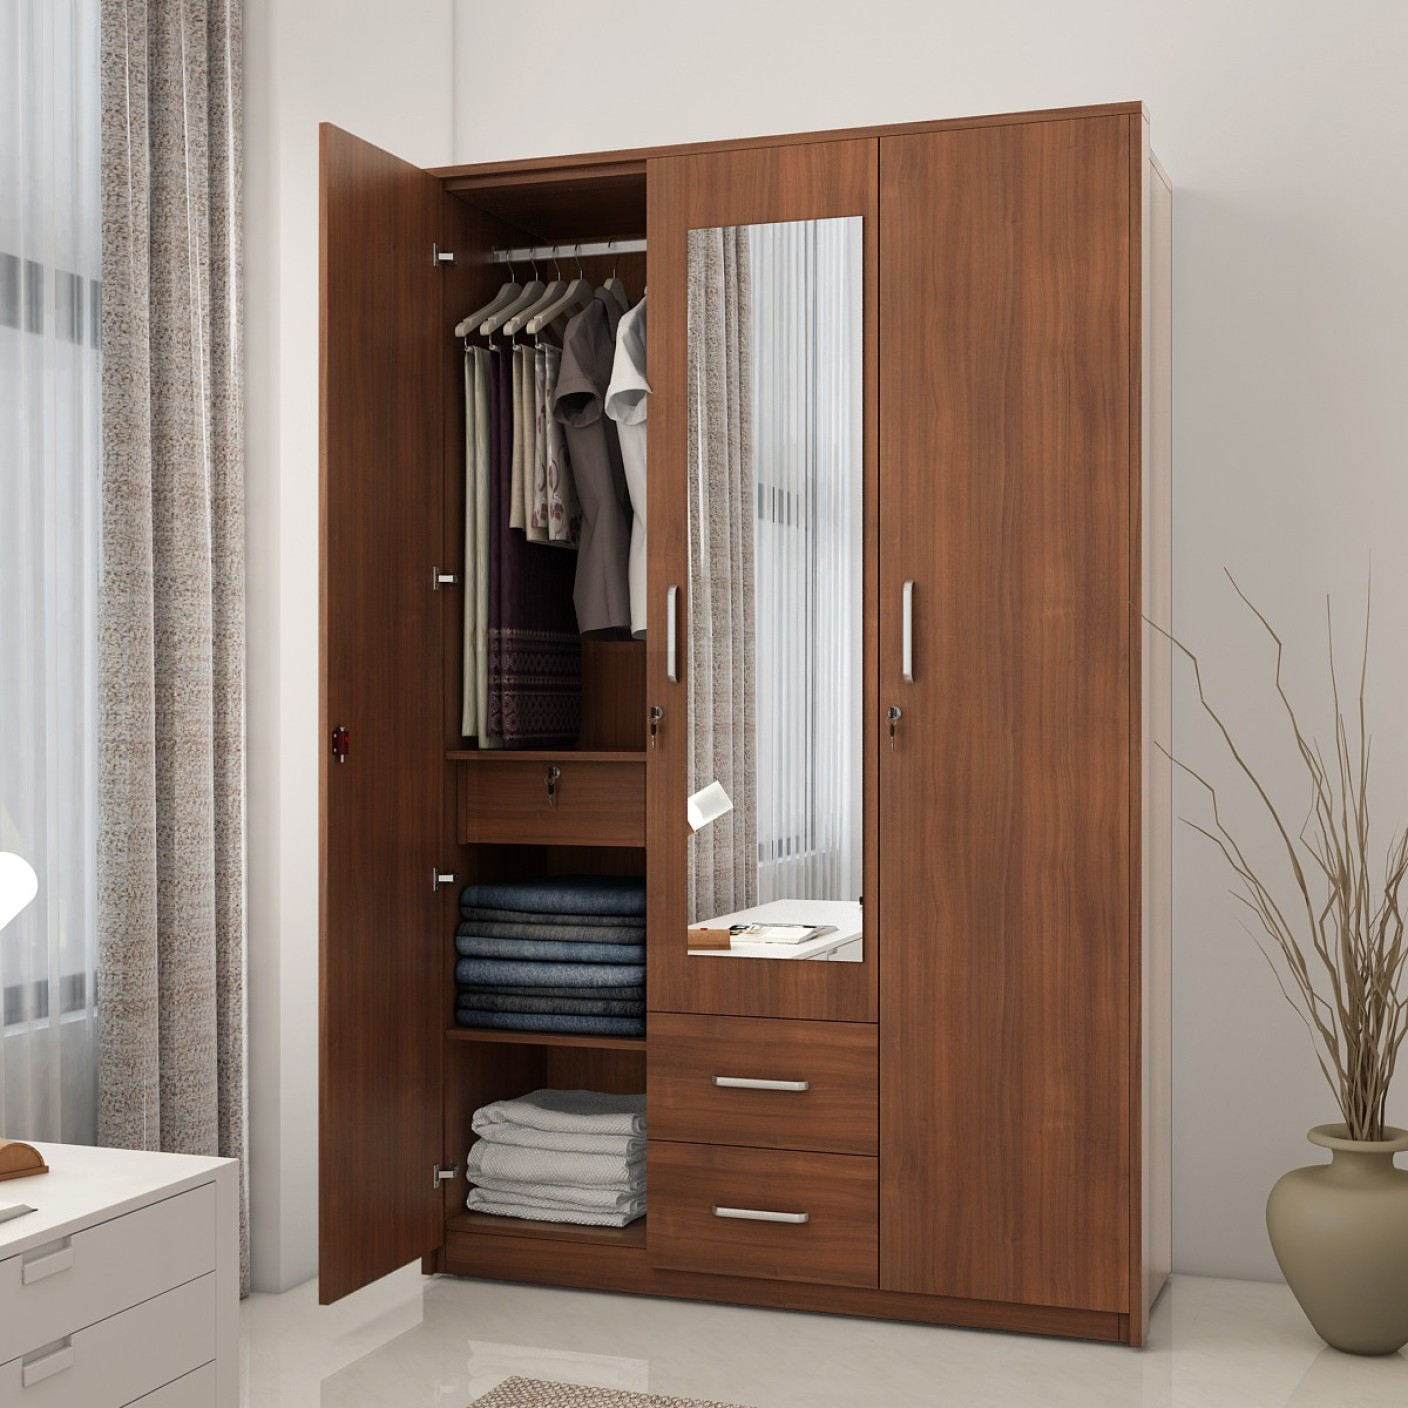 Online shopping india buy mobiles electronics for 1 door wardrobes